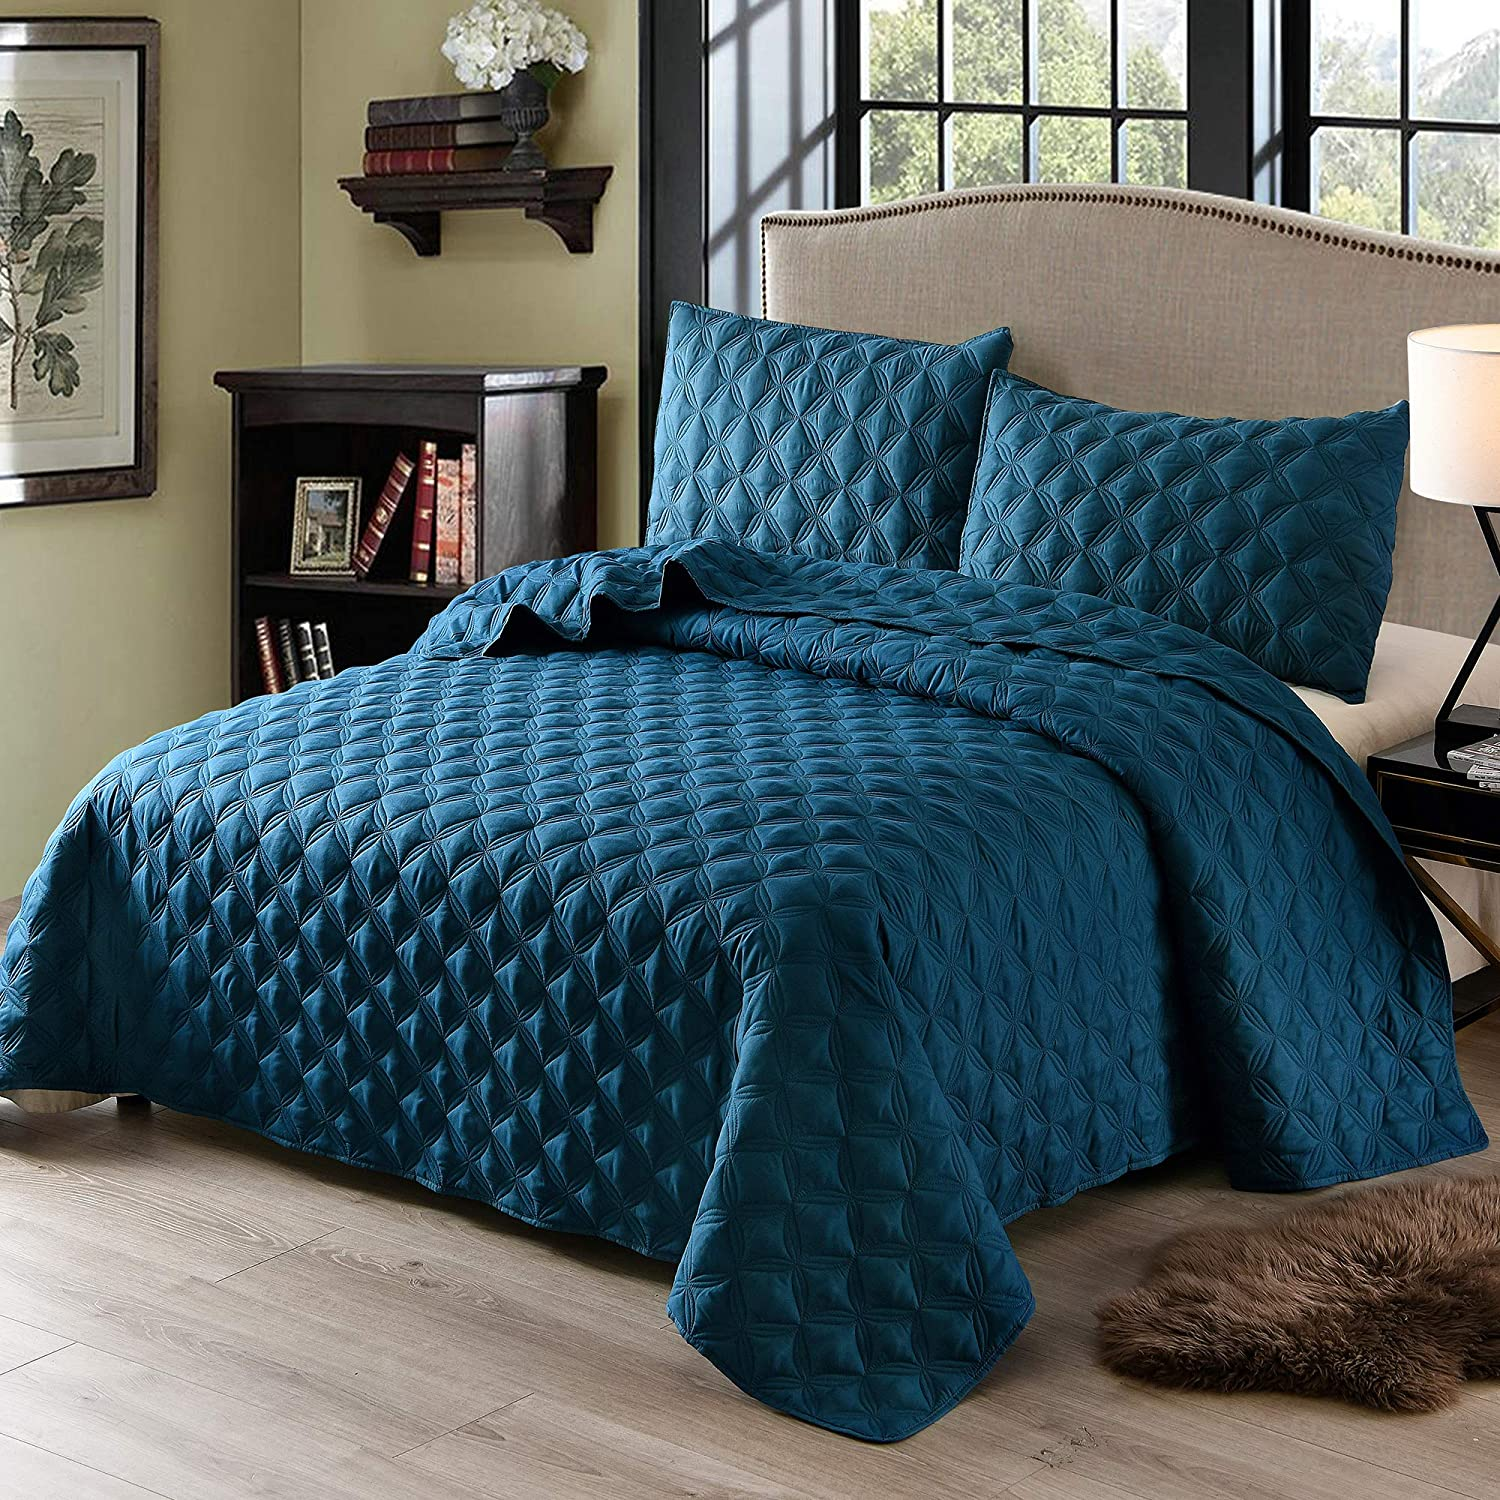 Exclusivo Mezcla 3-Piece Queen Size Quilt Set with Pillow Shams, as Bedspread/Coverlet/Bed Cover(Ellipse Blue) - Soft, Lightweight, Reversible and Hypoallergenic